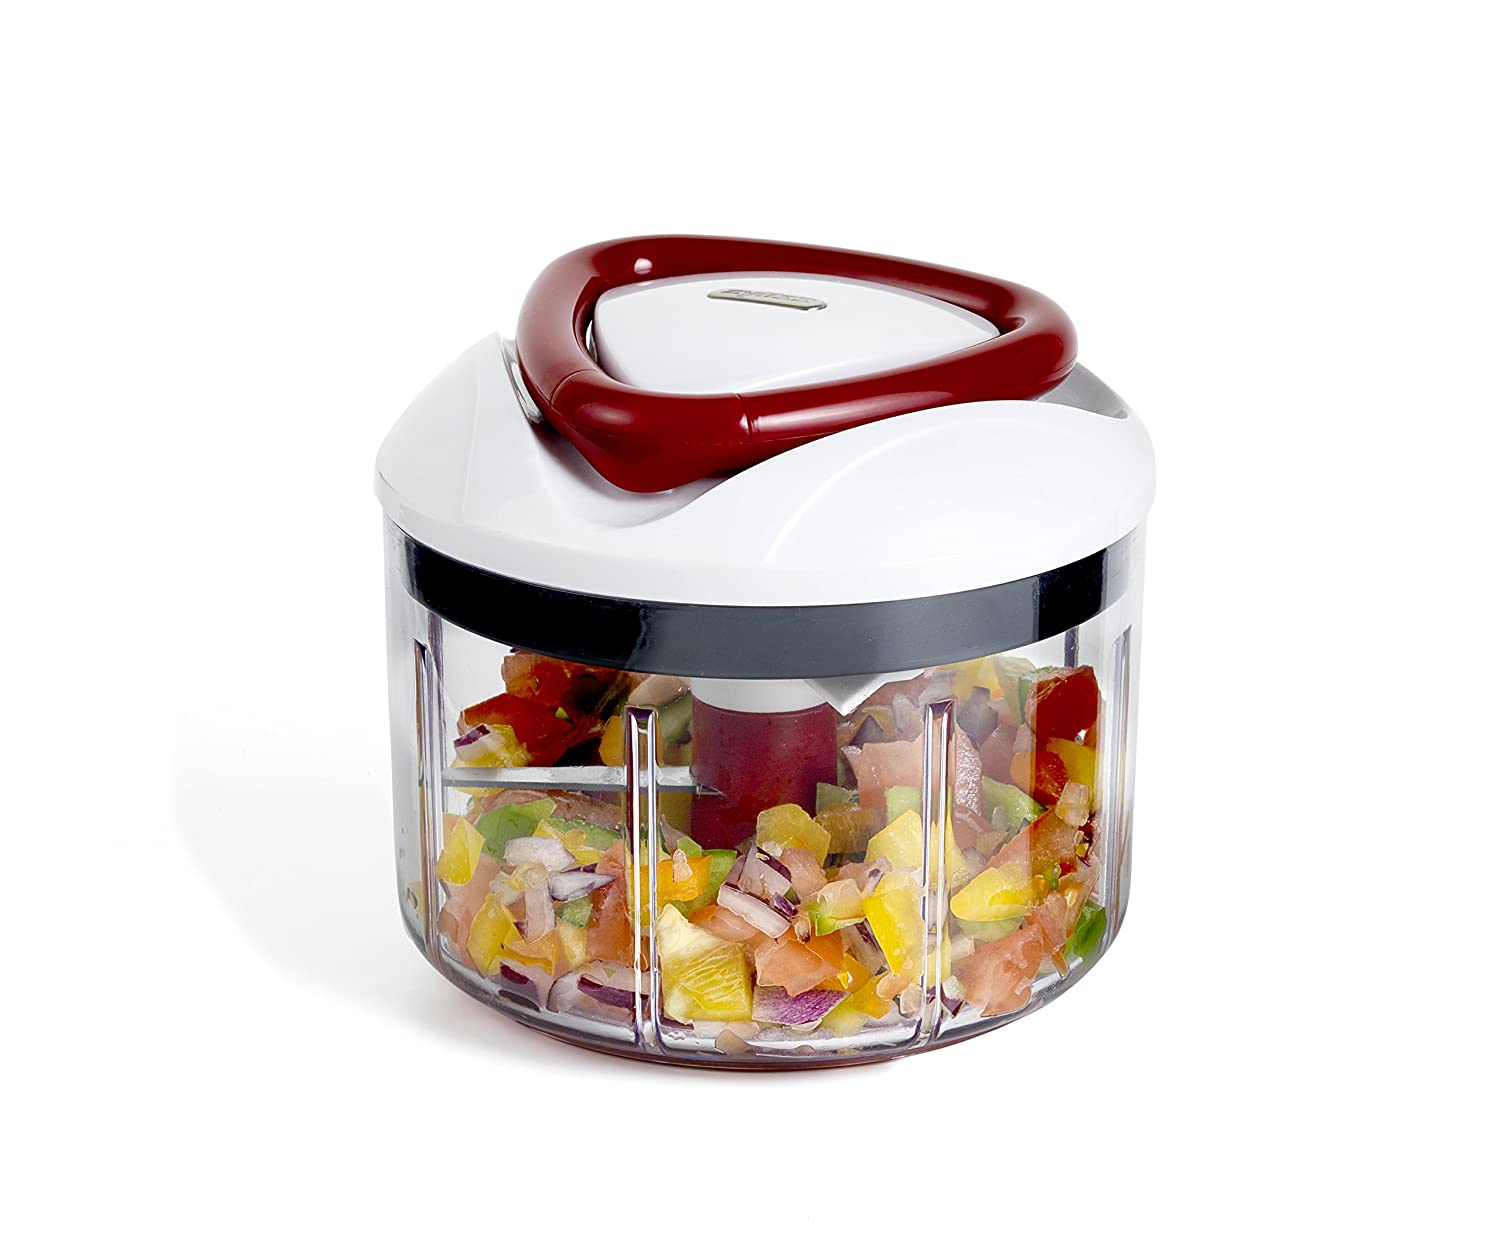 Zyliss Easypull Manual Food Processor  Ml White Grey Red